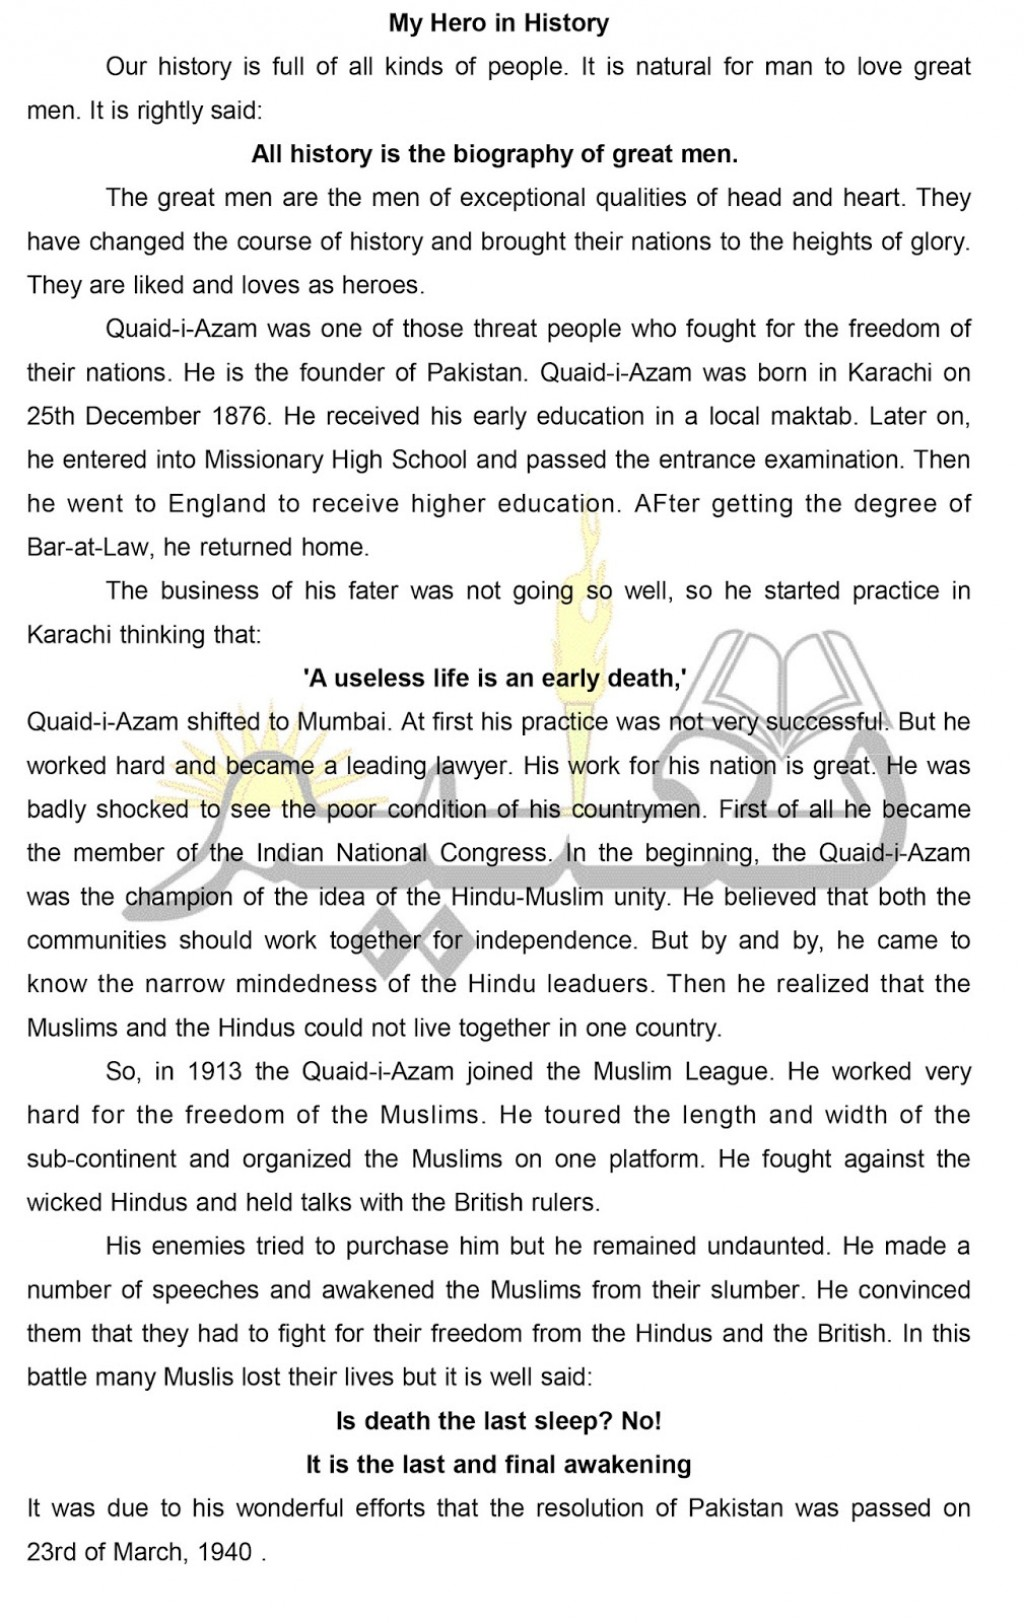 012 Essay01 An Essay About My Hero Fascinating Heroine Teacher 500 Words A Narrative Large